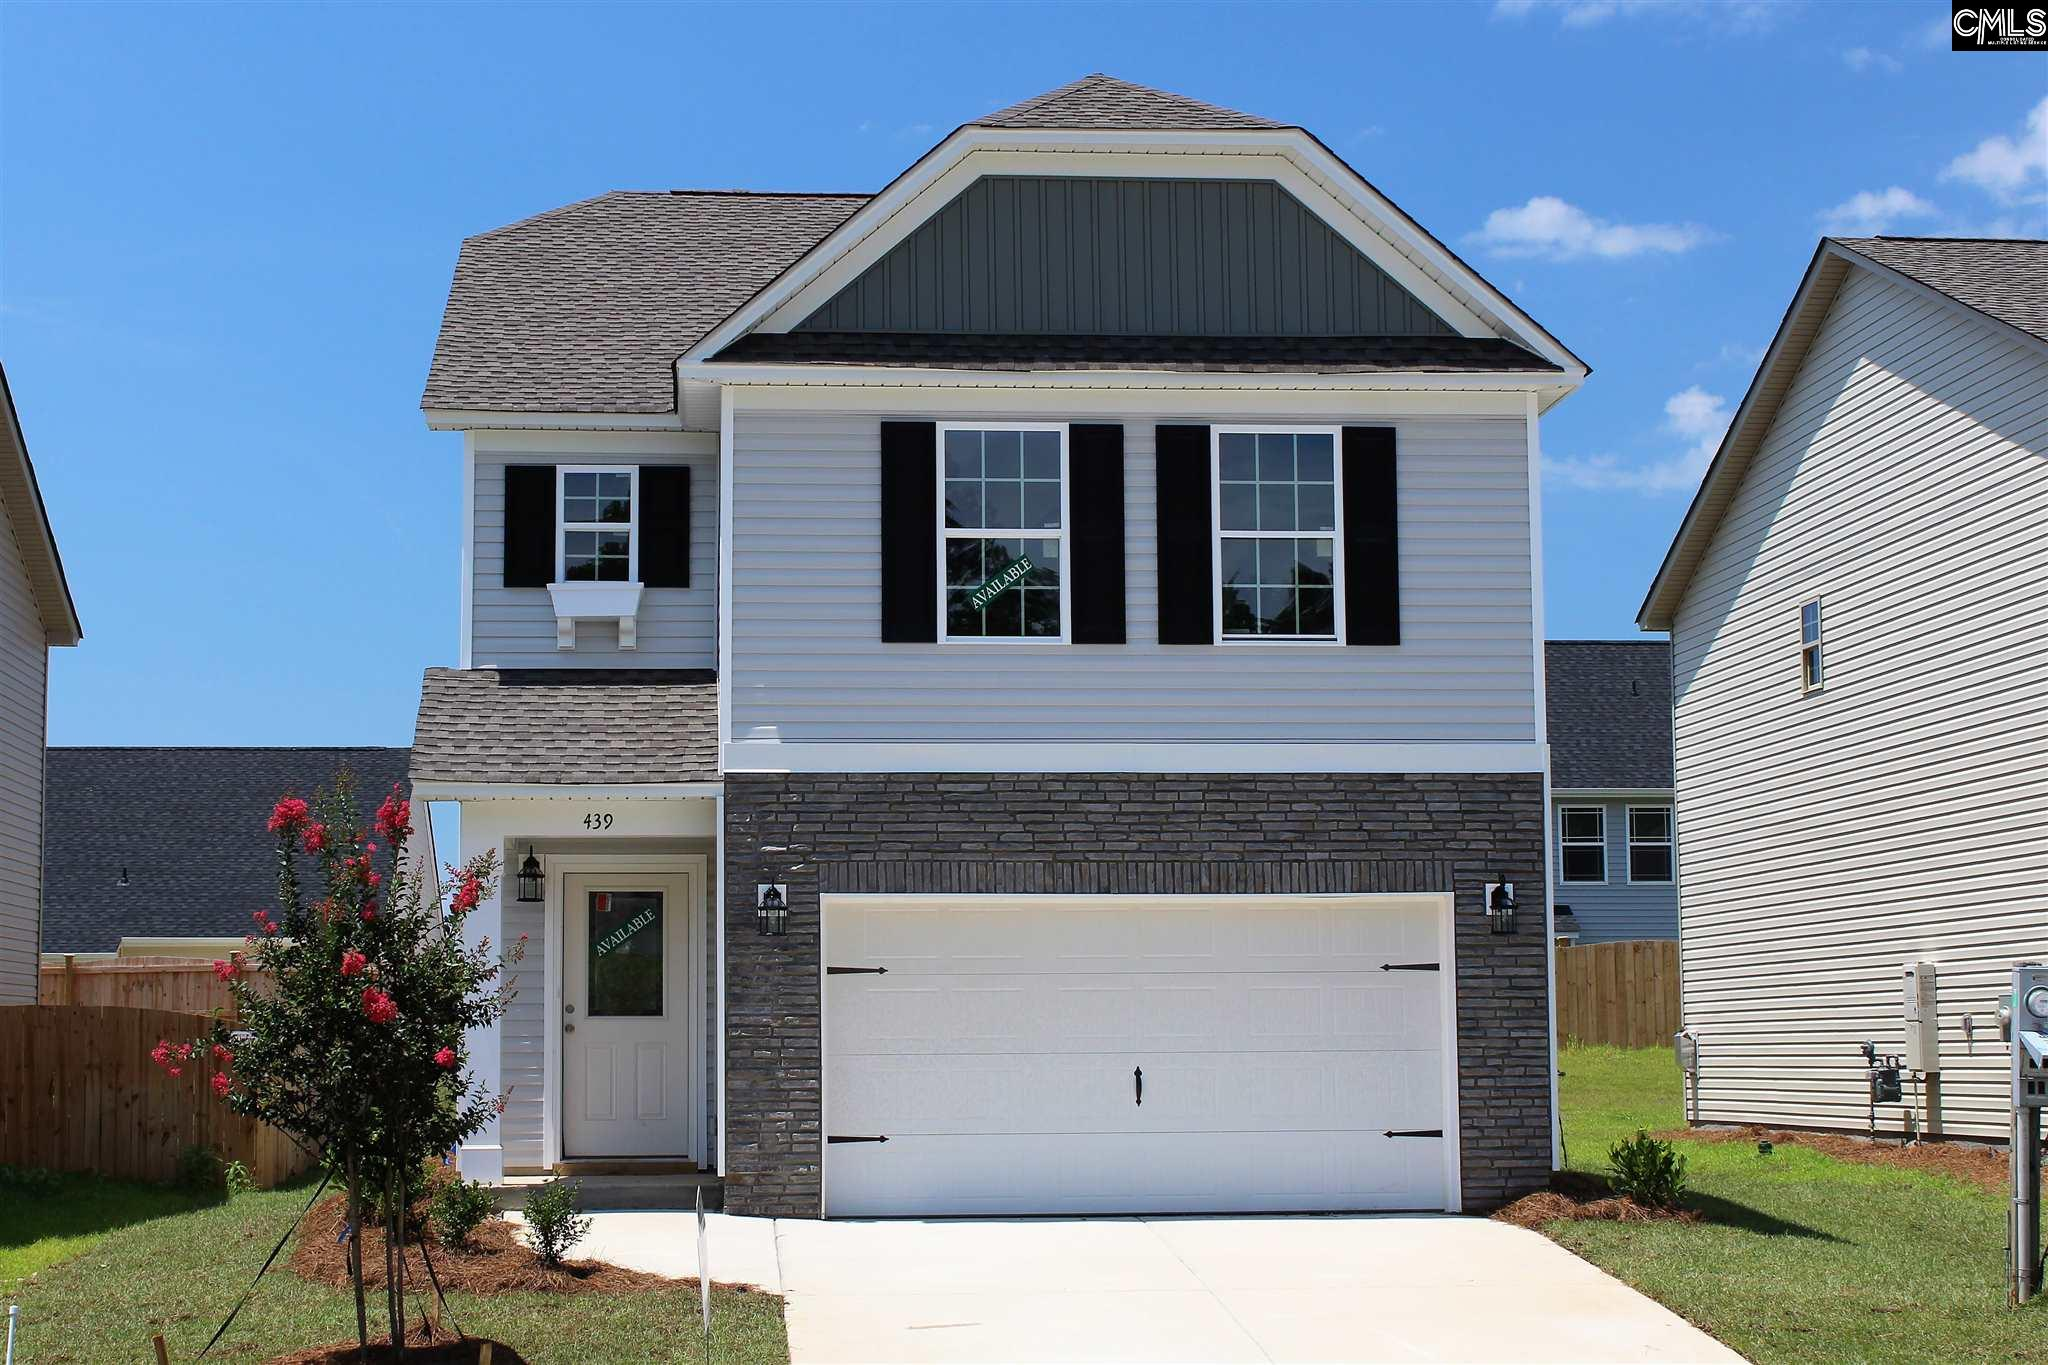 439 Fairford (lot 98) Blythewood, SC 29016